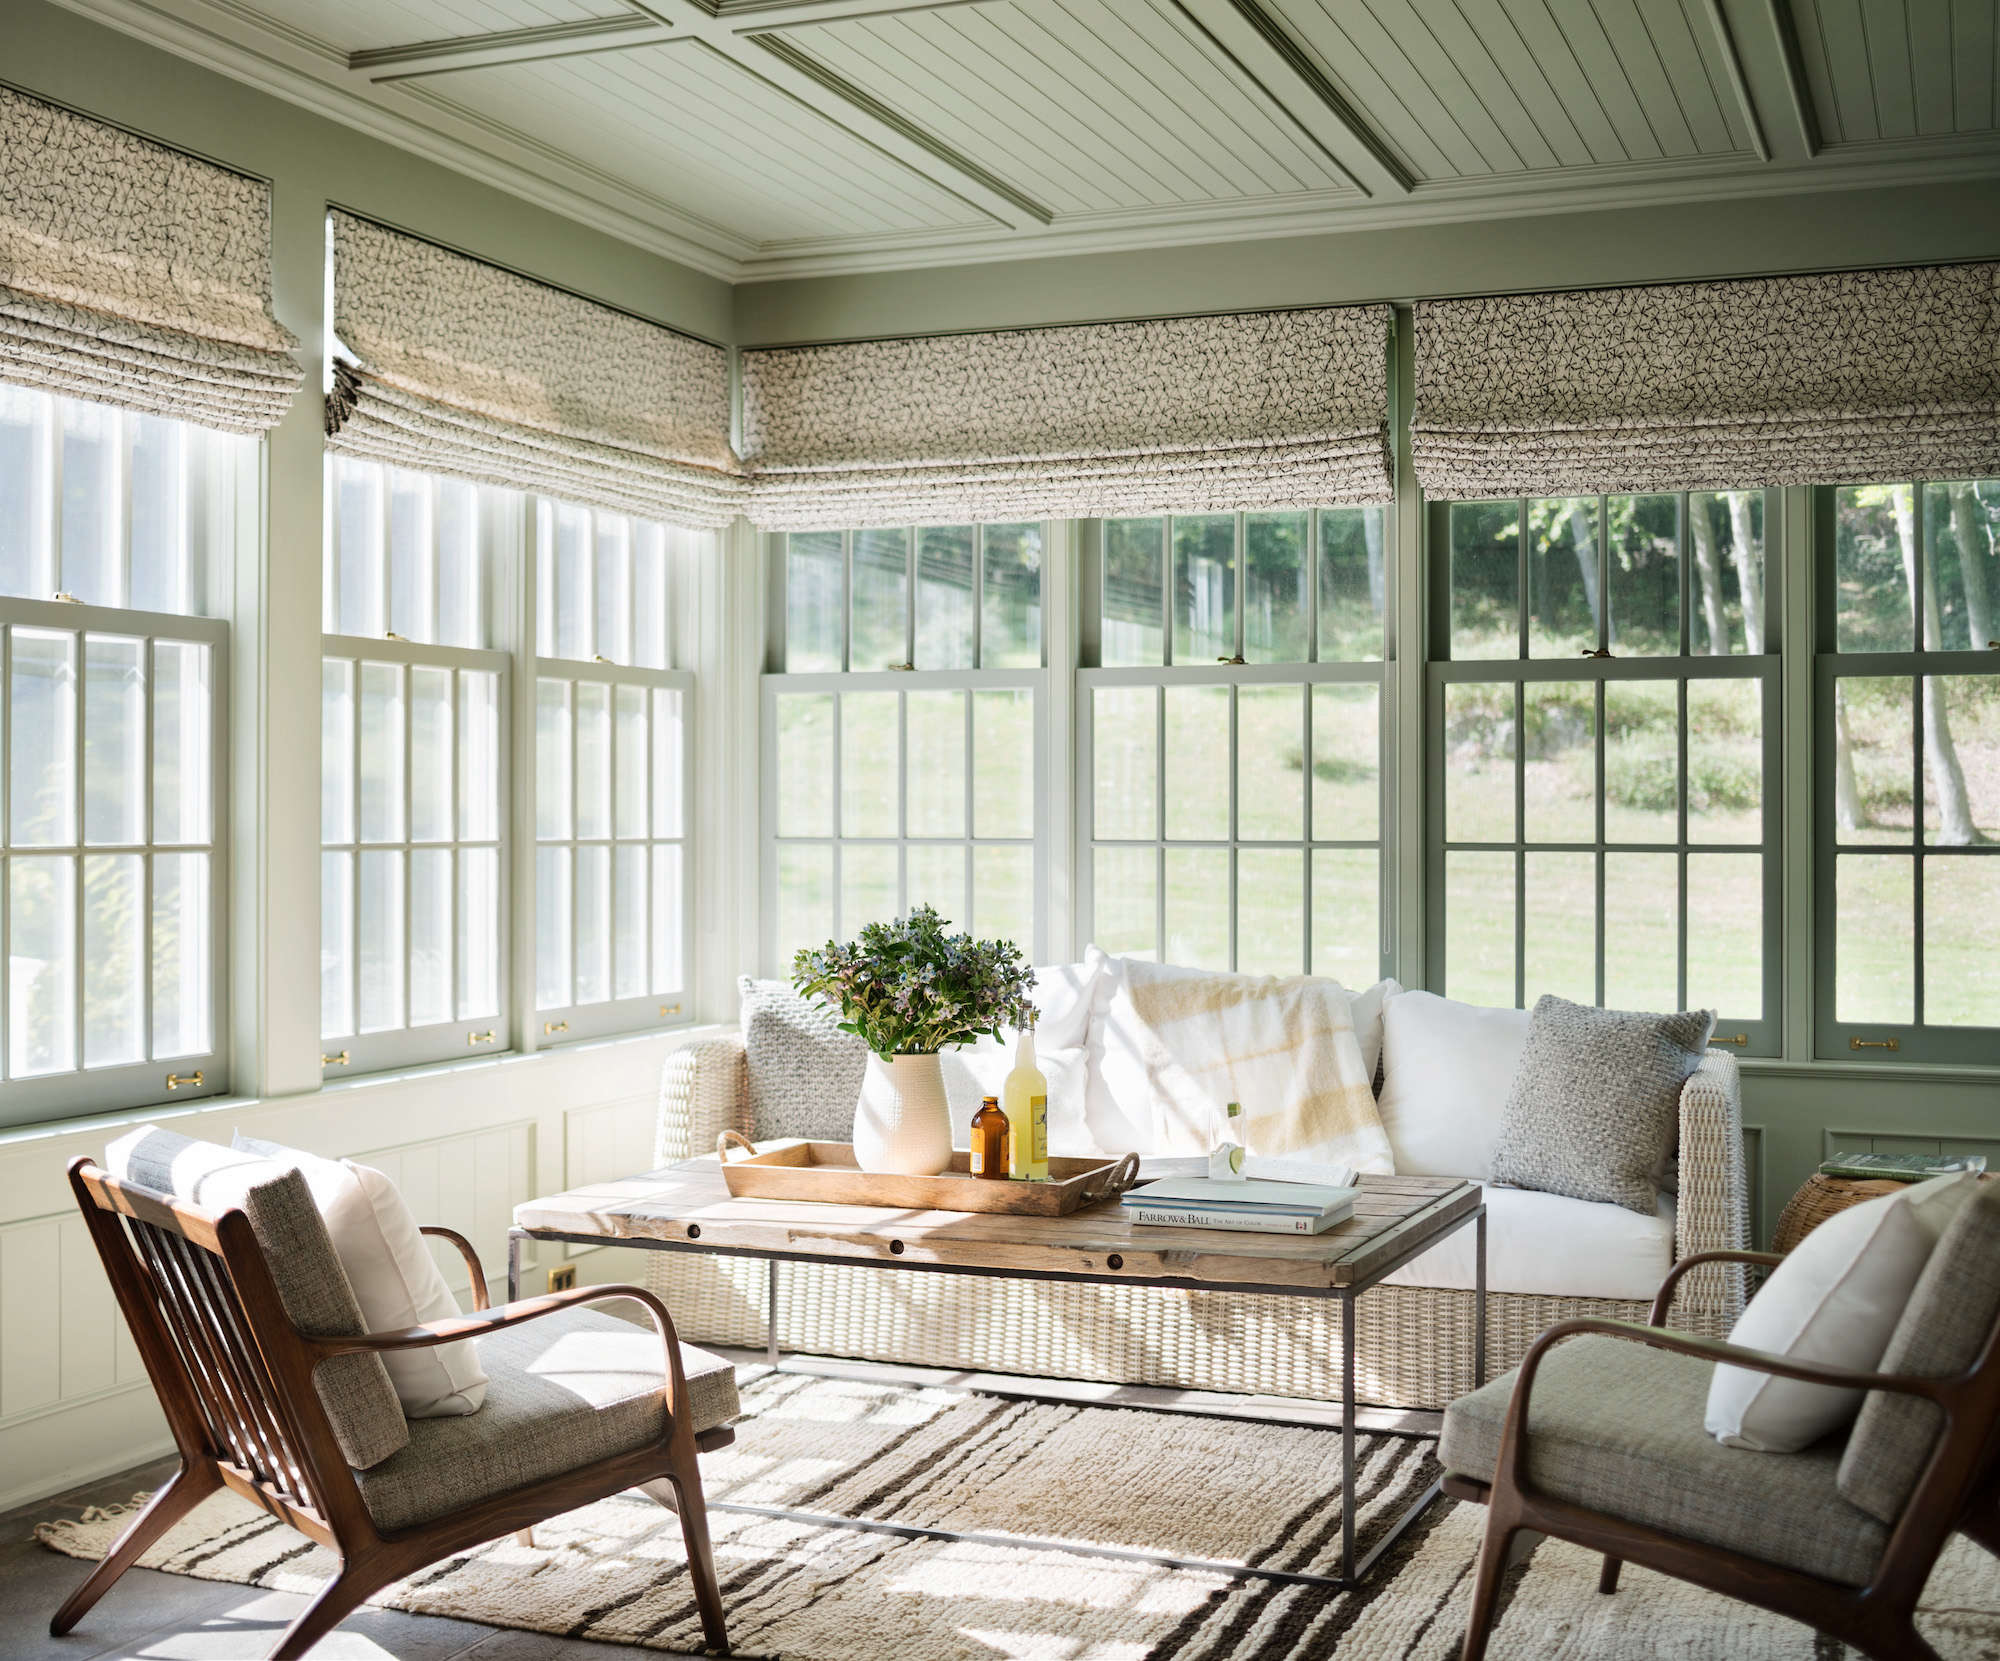 sunroom-in-modern-traditional-farmhouse-renovation-green-painted-ceiling